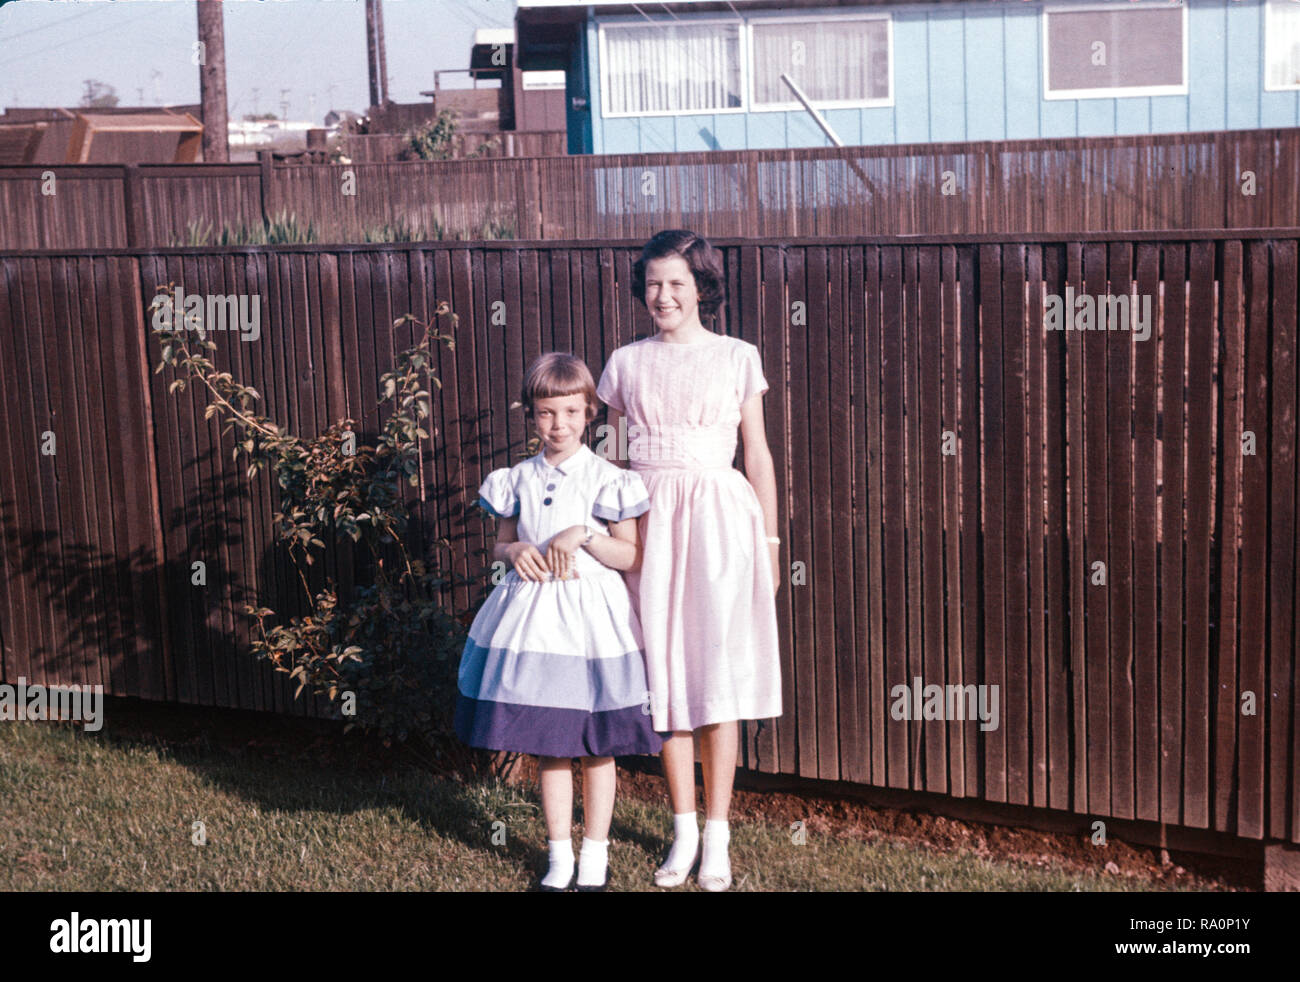 Cousins with their pretty dresses pose for a picture in the backyard, USA  1960 - Stock Image